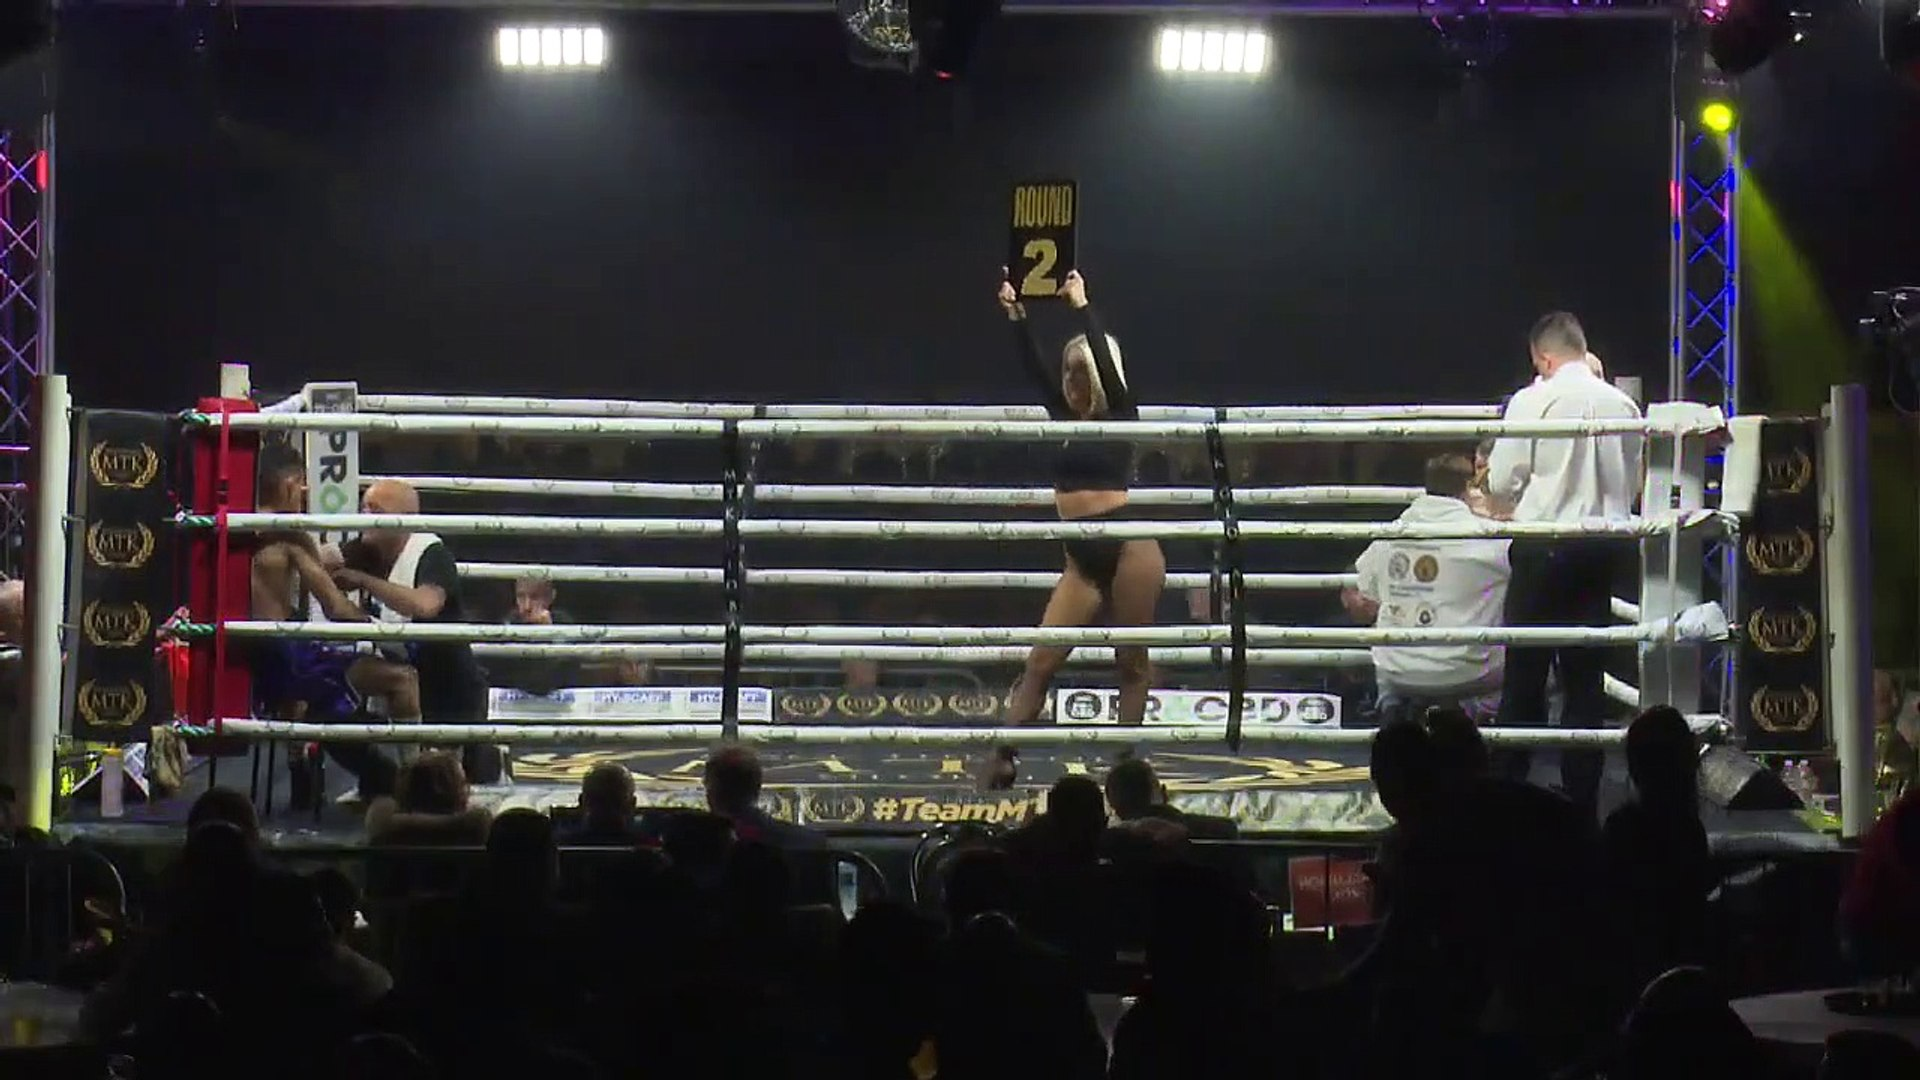 David White Jr. vs Jose Aguilar (01-03-2019) Full FIght 720 x 1280